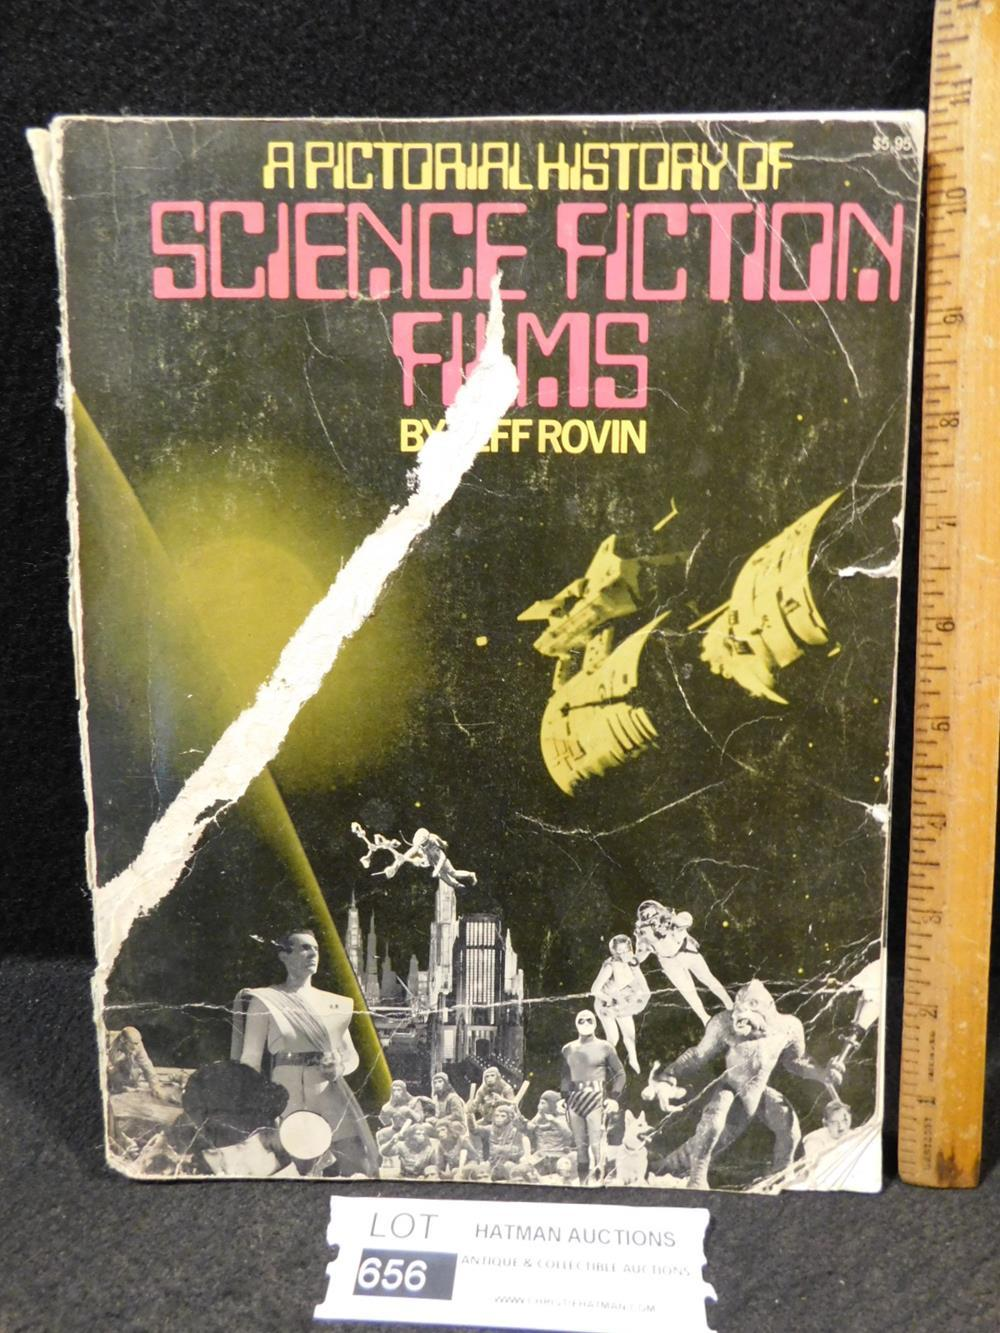 A PICTORIAL HISTORY OF SCIENCE FICTION FILMS BOOK ANTIQUES AND COLLECTIBLES